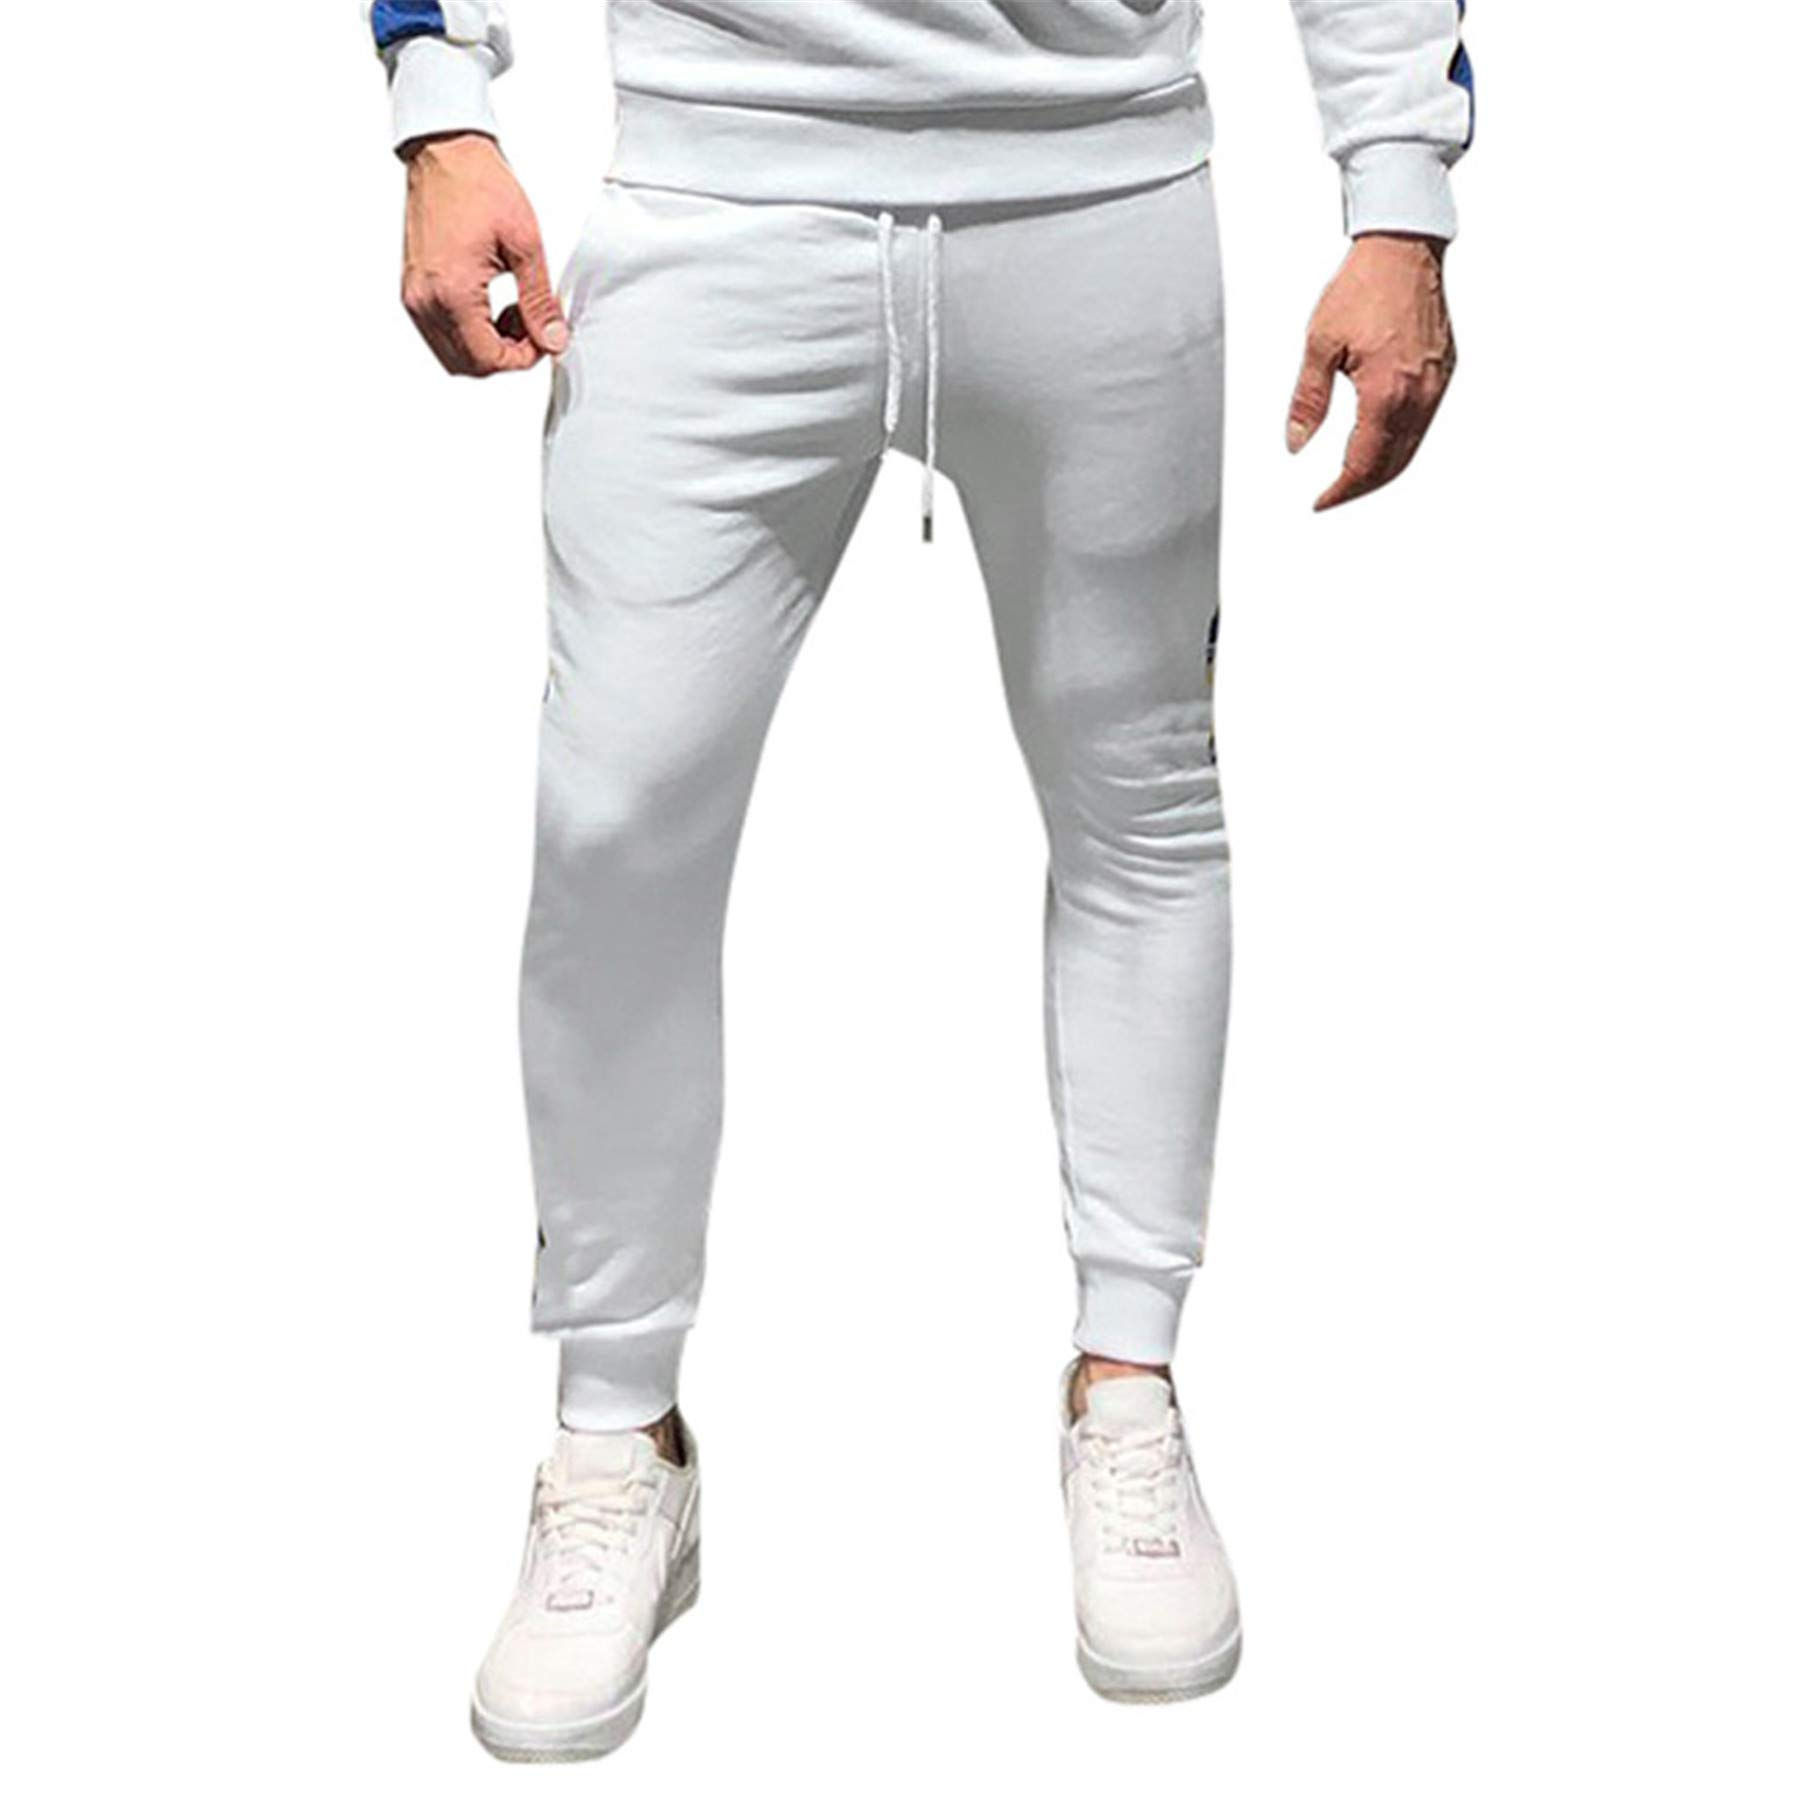 Mens Athletic 2 Piece Tracksuit Set Hip Hop Solid Color Side Taping Jogging Athletic Suit (L, White #B) by FRC0LT